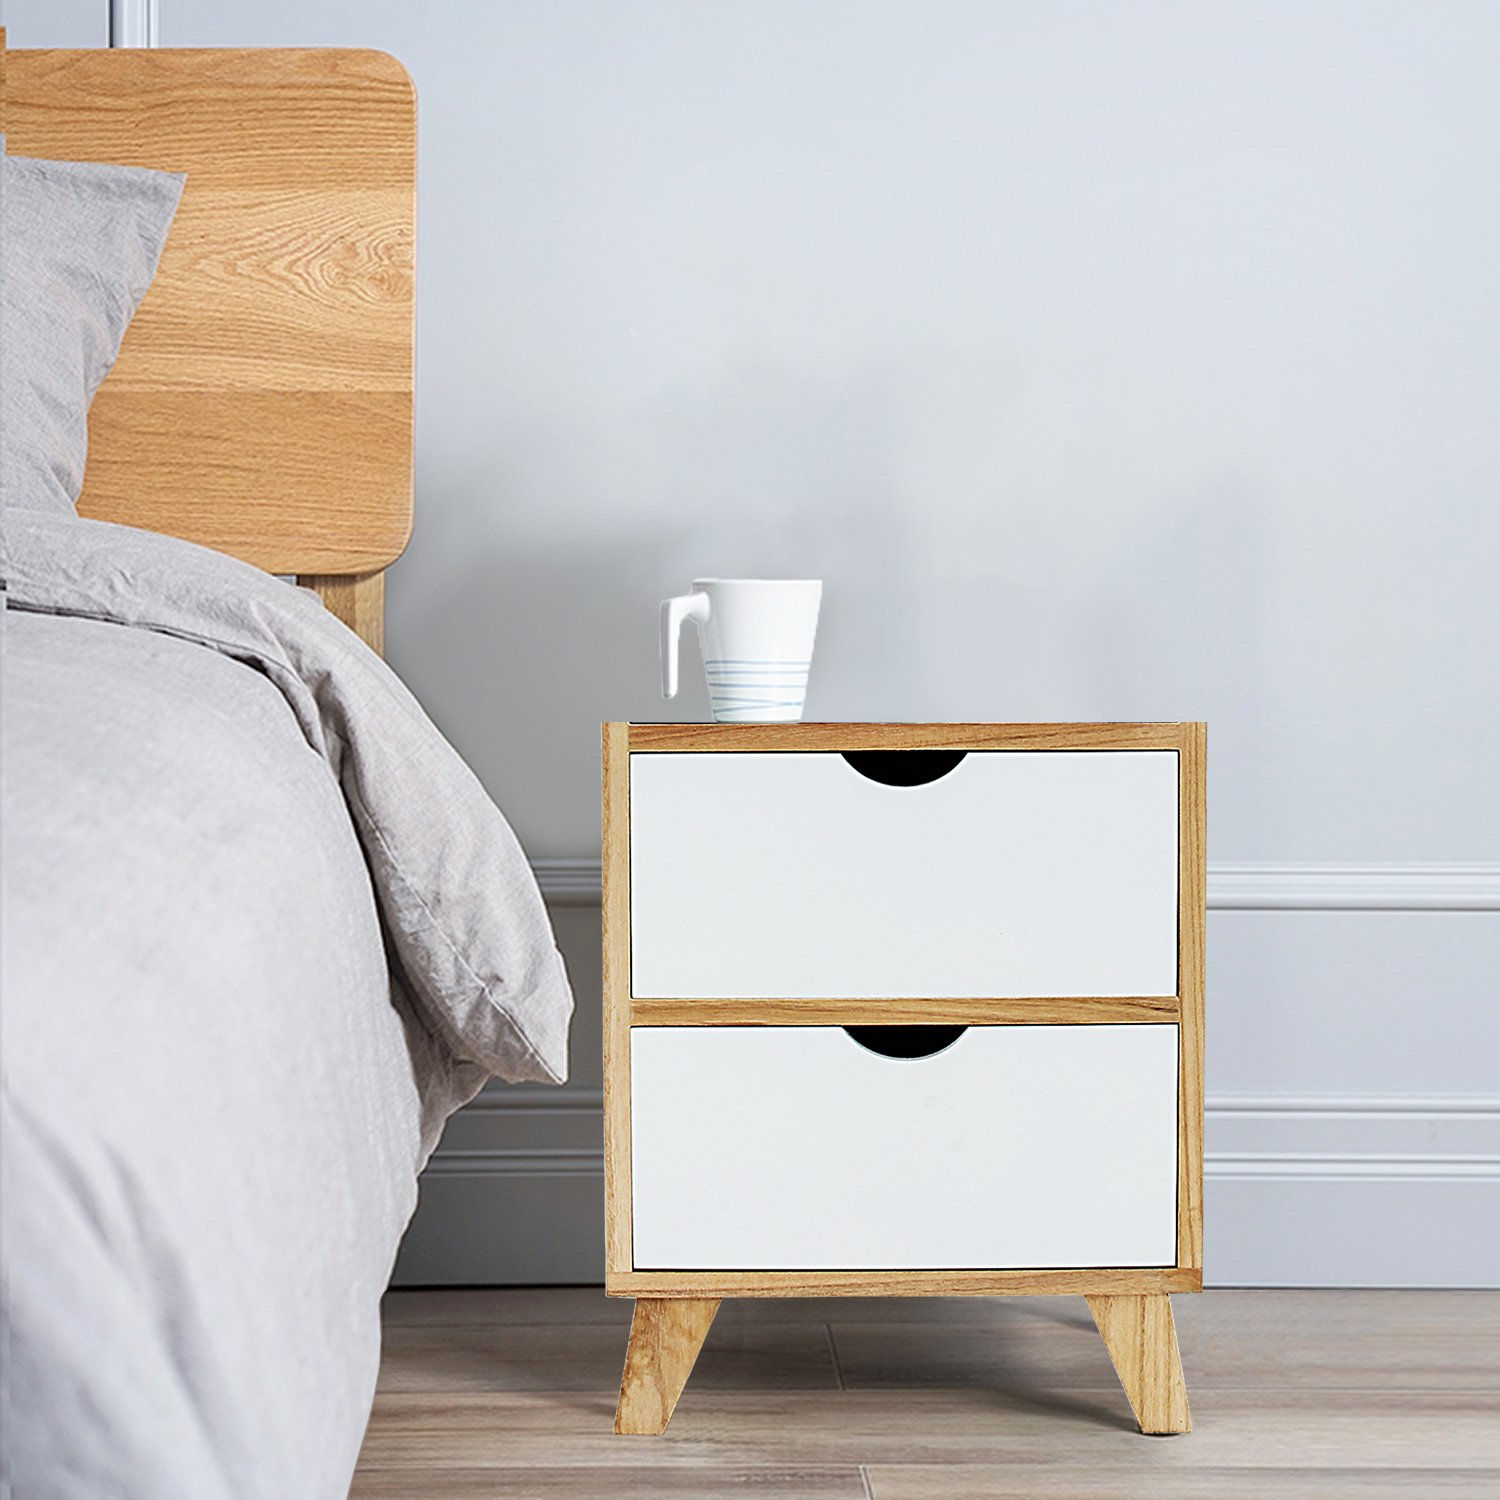 Jerry & Maggie - Nightstand - 2 Tier Curving Pattern Sides Night Stand Storage Bedside Table with 2 Drawer Real Natural Paulownia Wood (2 Tier   Cubric Style) by Jerry & Maggie (Image #1)